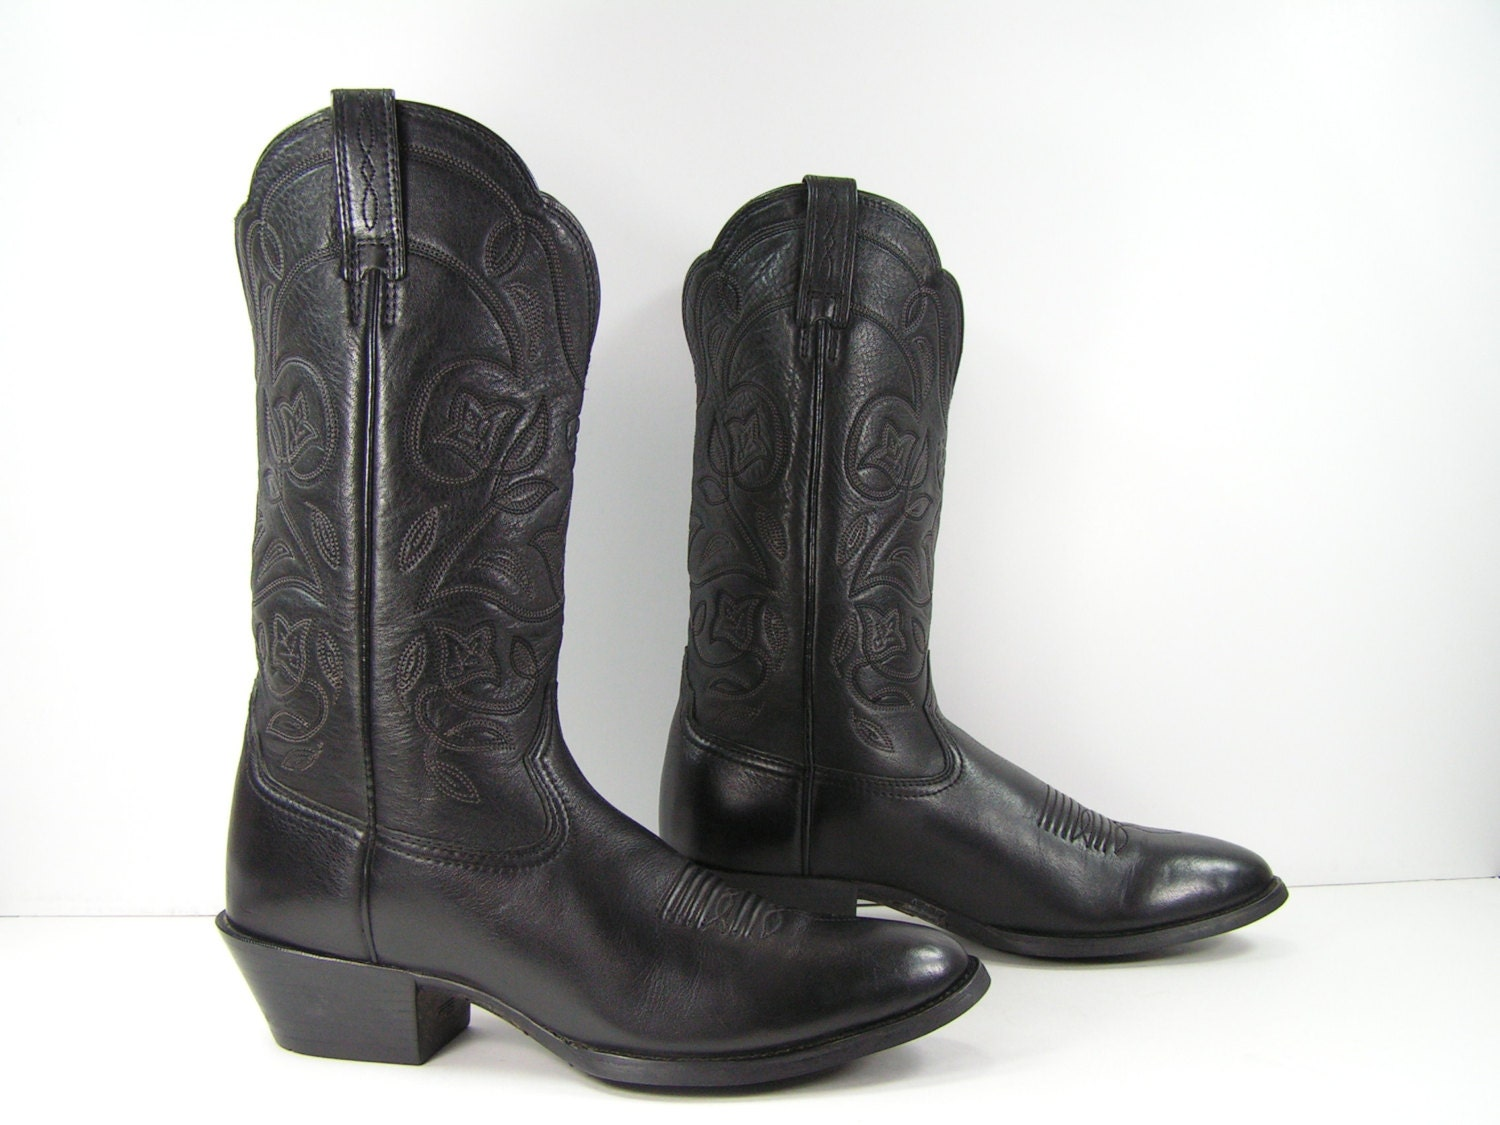 ariat cowboy boots women's 8 M B black soft by vintagecowboyboots